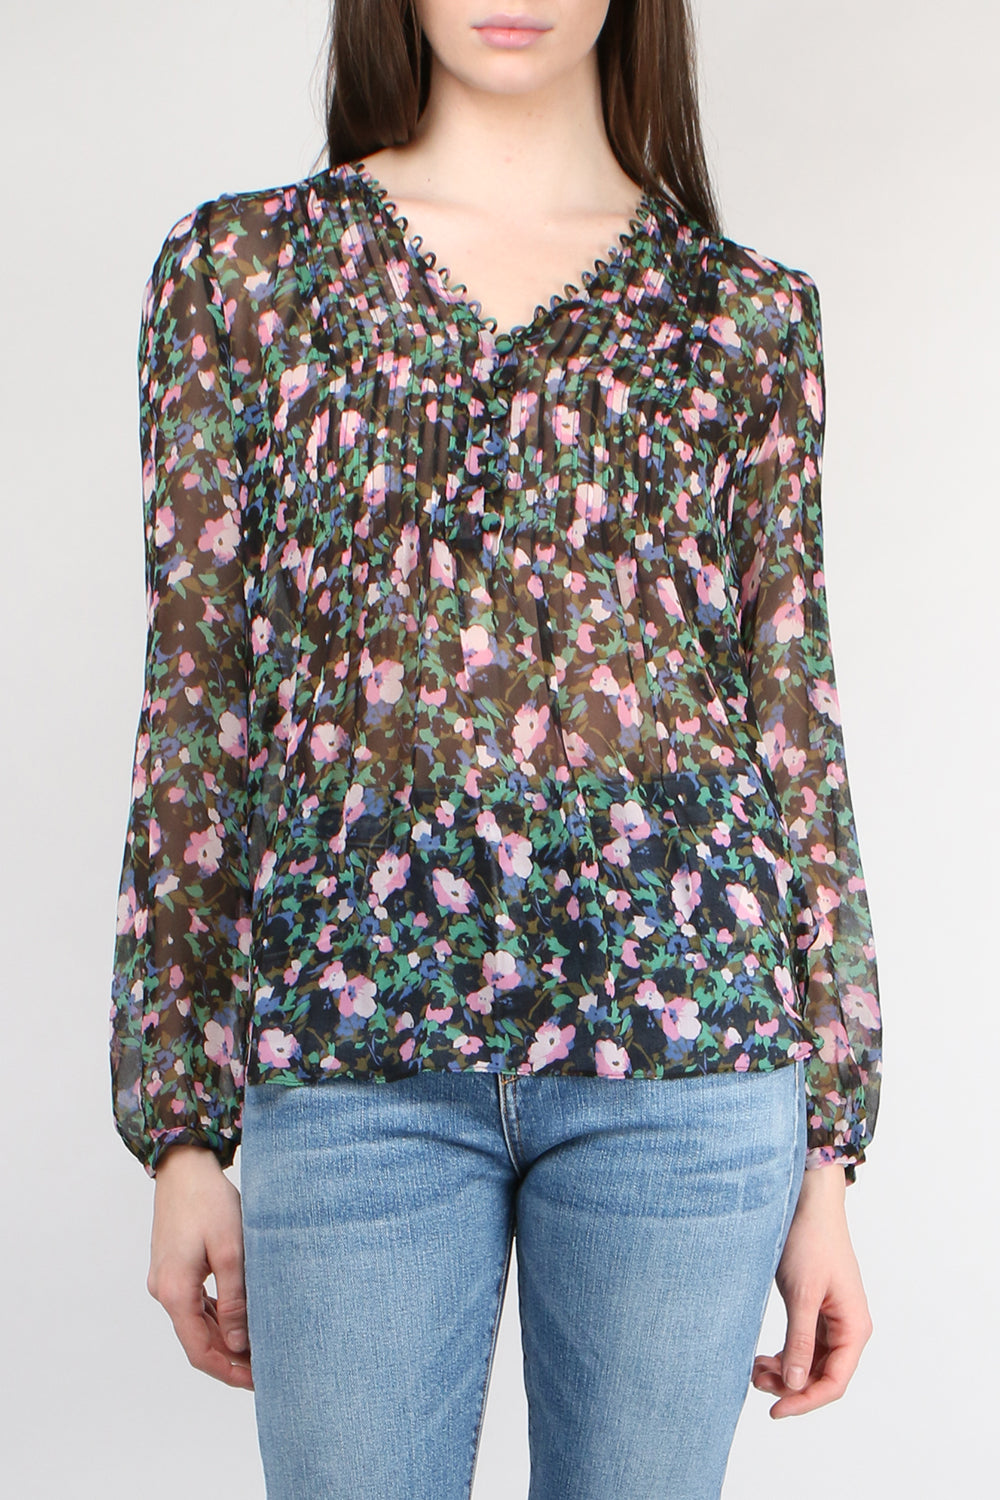 Veronica Beard Lowell Blouse